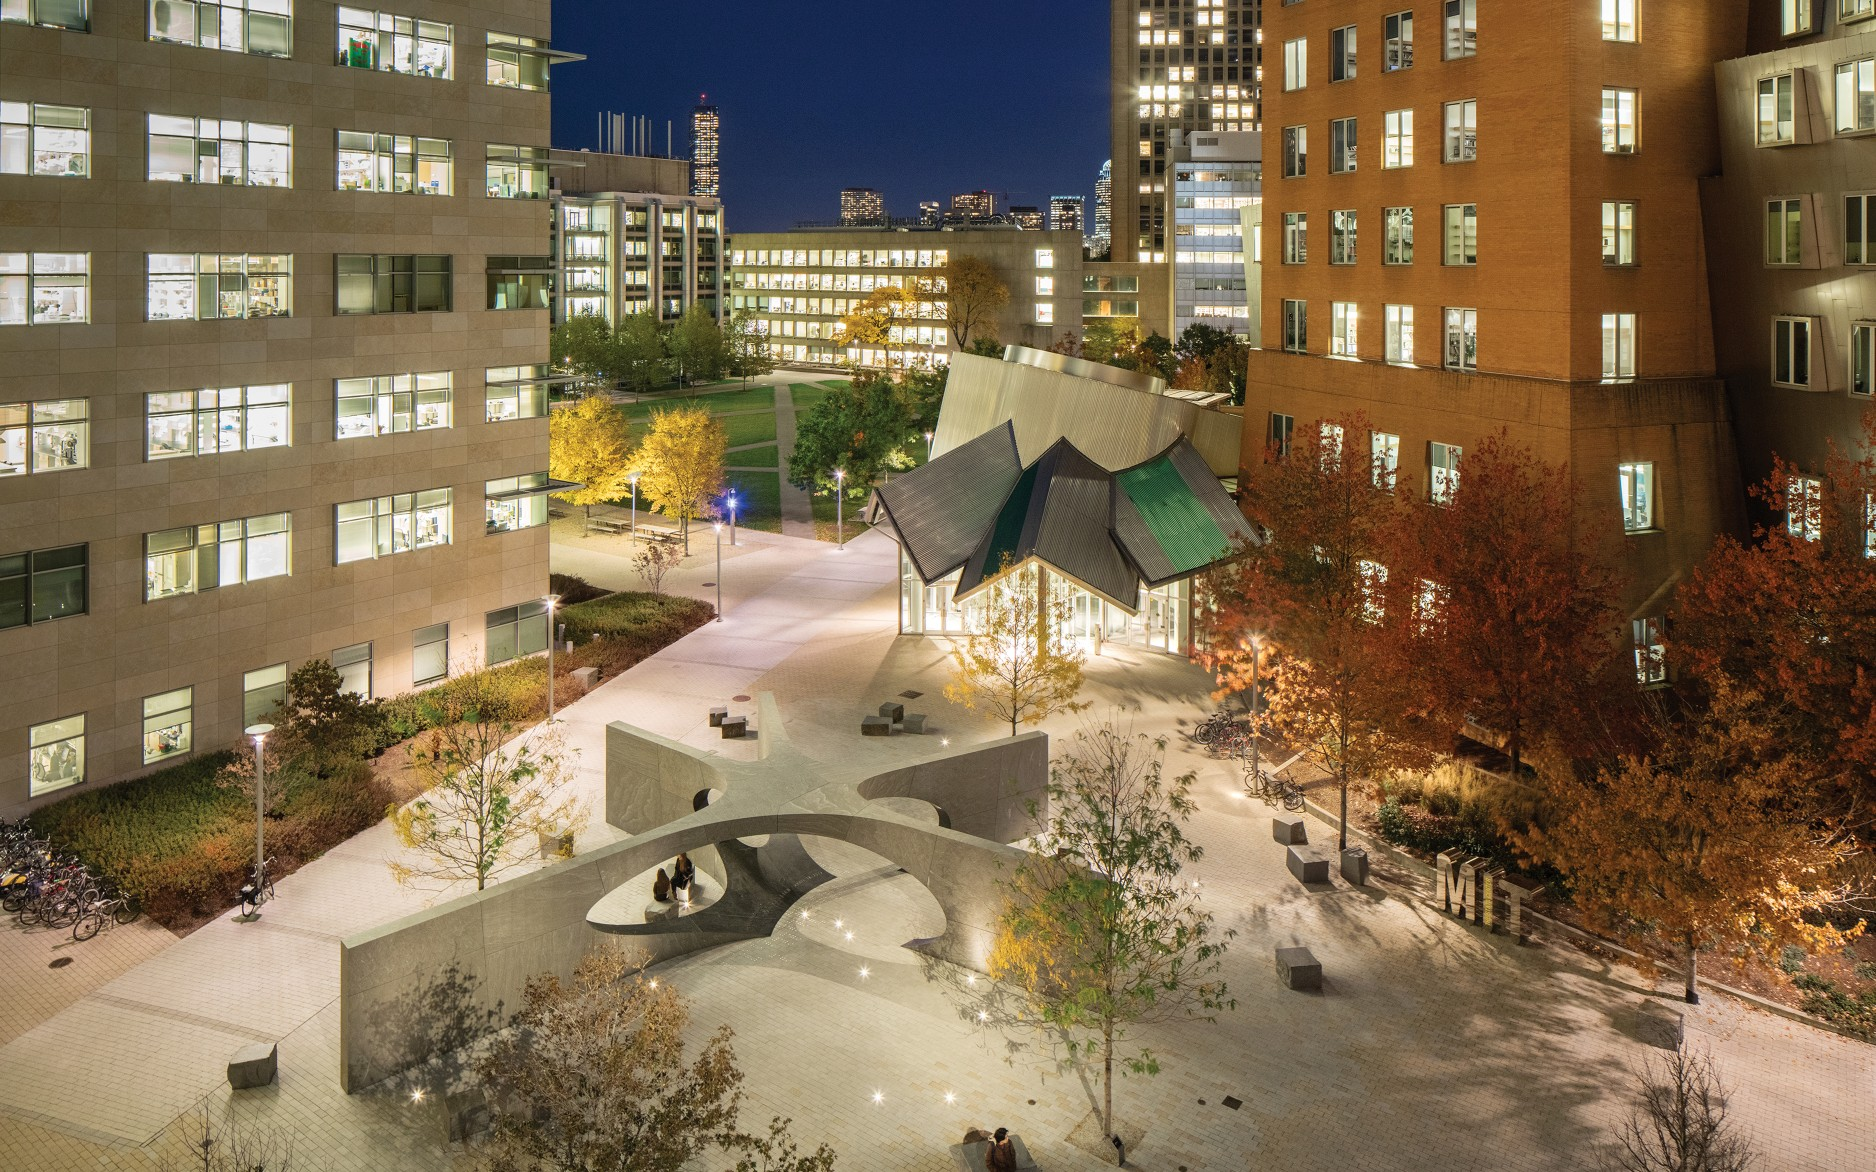 The Collier Memorial at MIT honors police officer Sean Collier, who was killed in the line of duty on April 18, 2013.